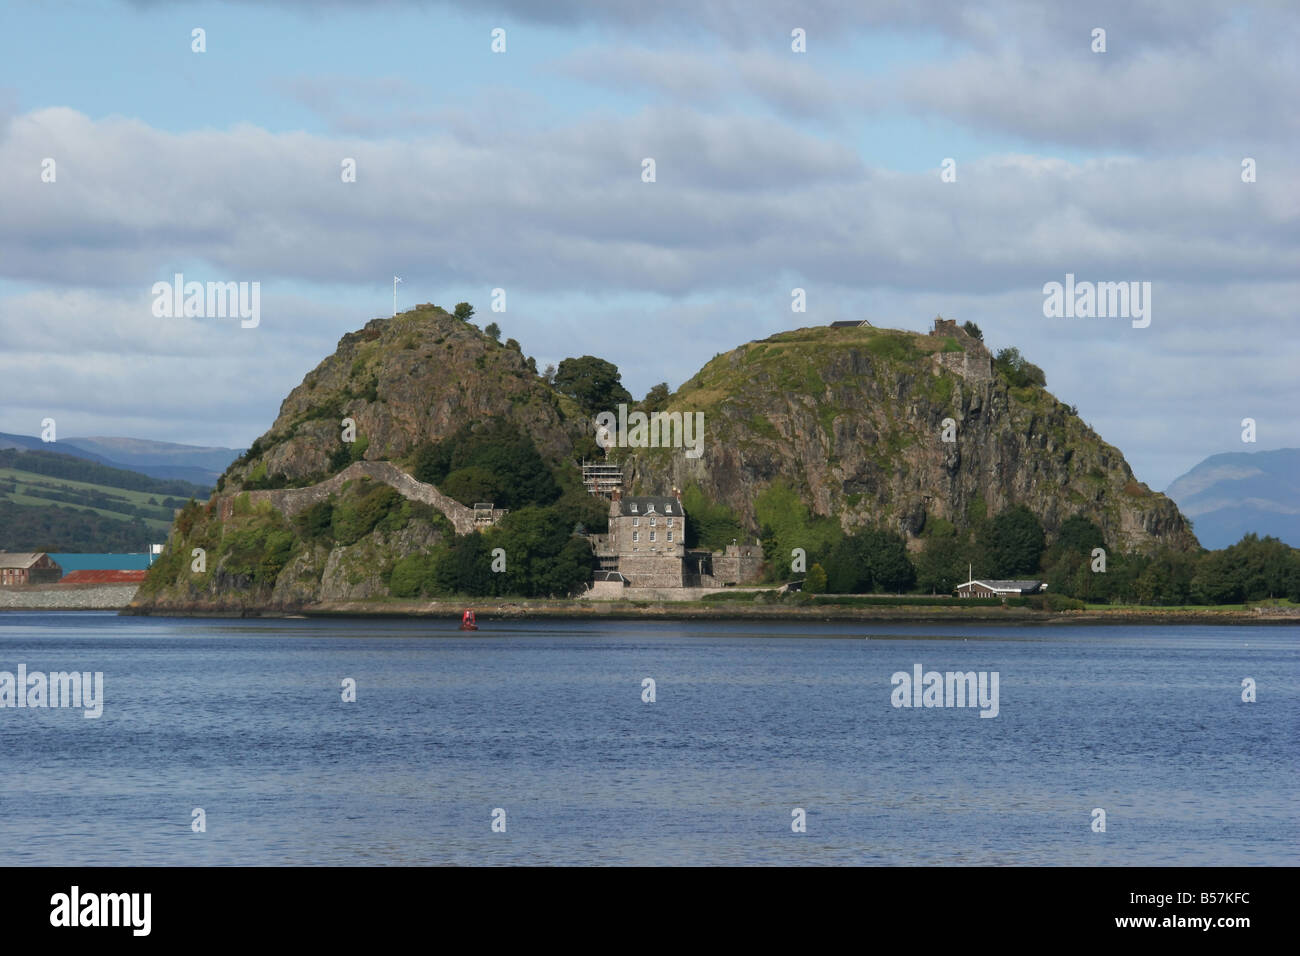 Dumbarton Rock and Castle - Stock Image